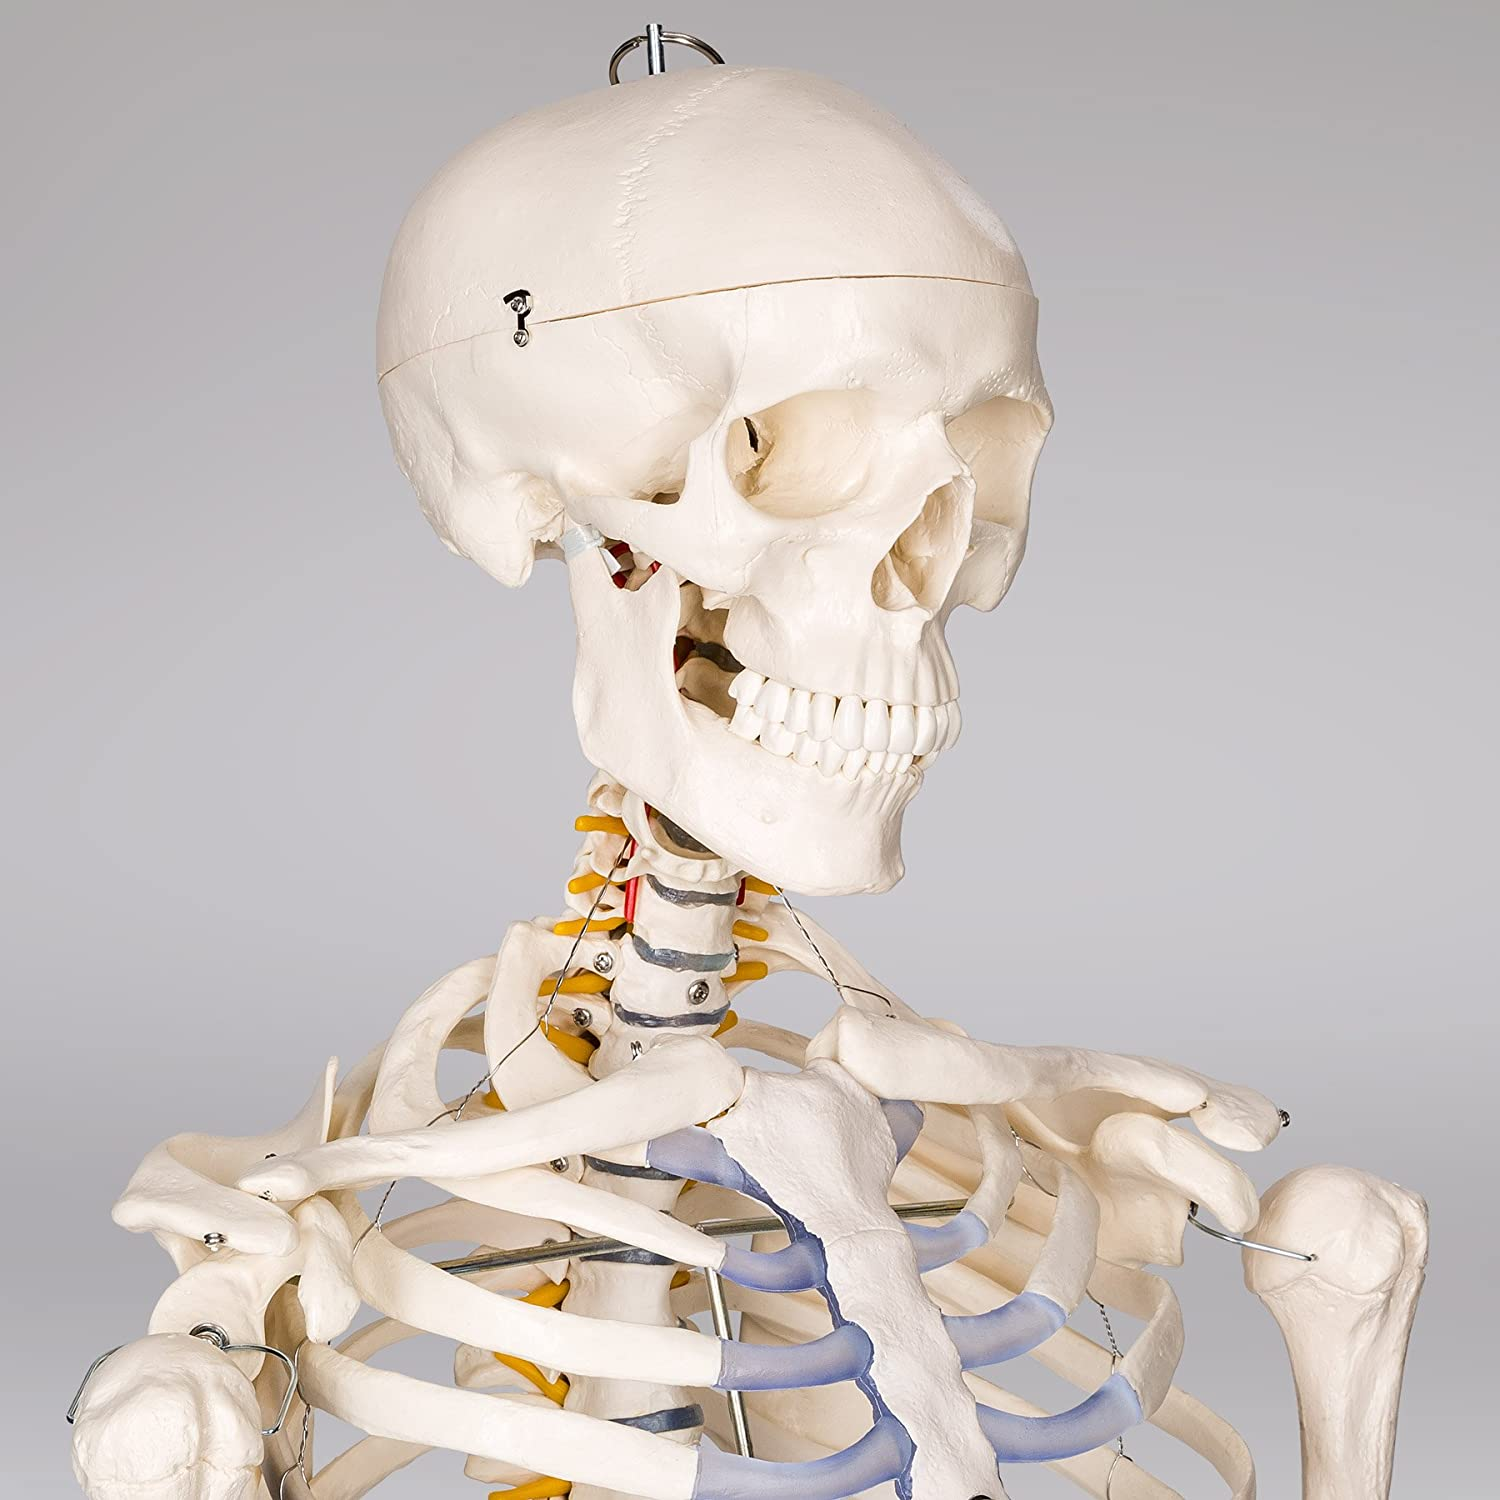 Tectake Human Skeleton Anatomical Model Life Size Different Models